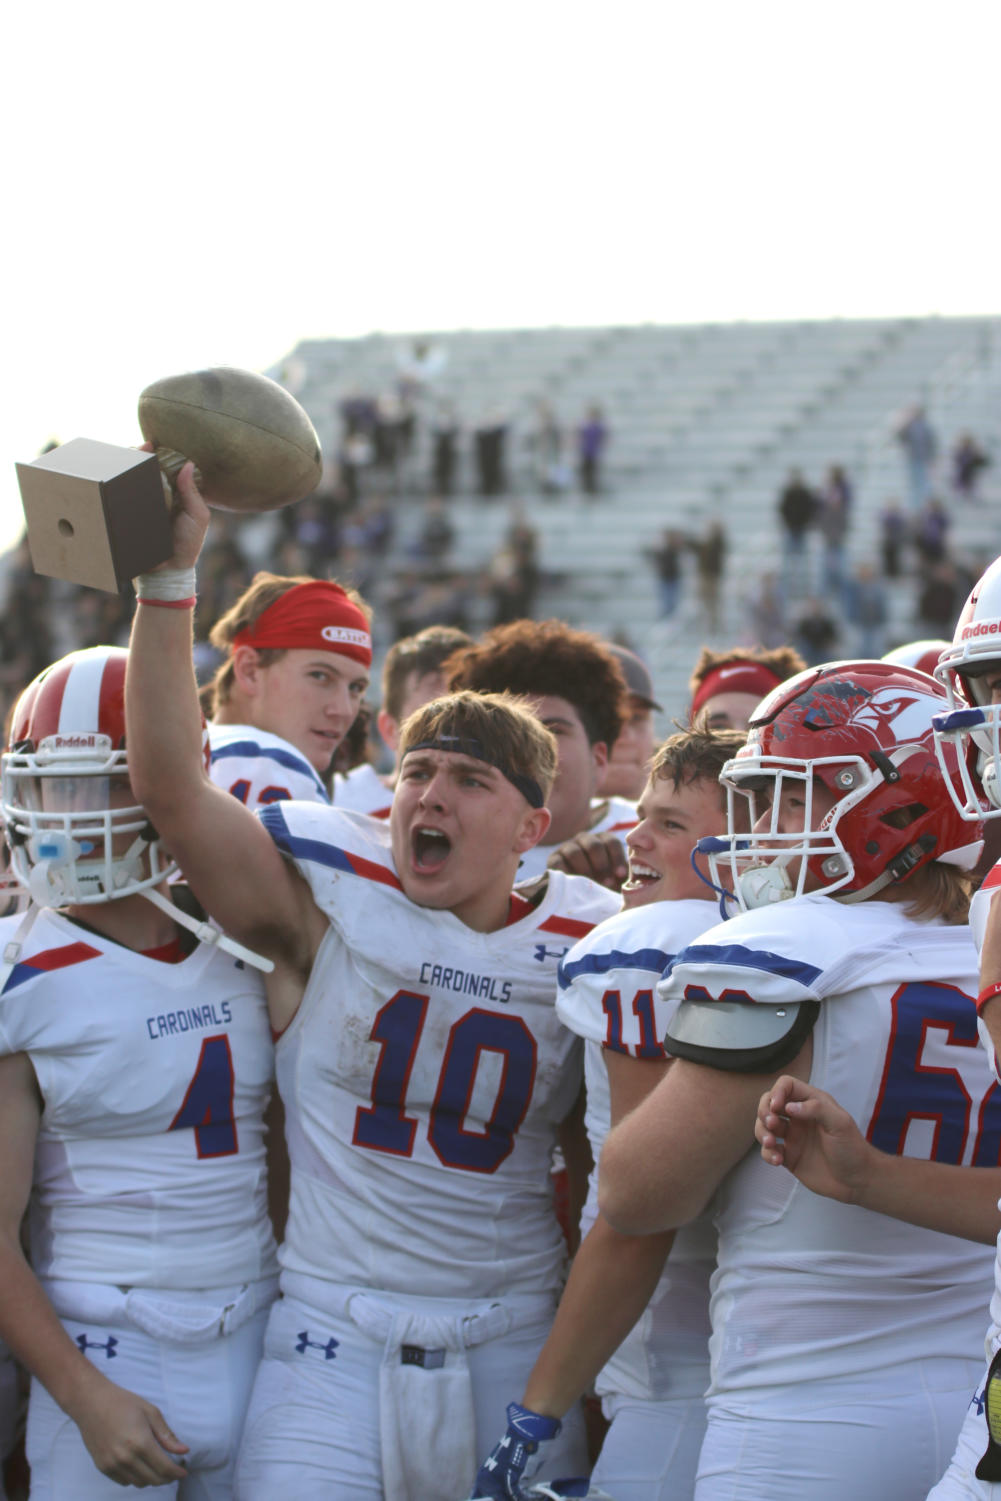 Senior Landon McKinney #10 holds up the bi-district trophy after winning the first playoff game.